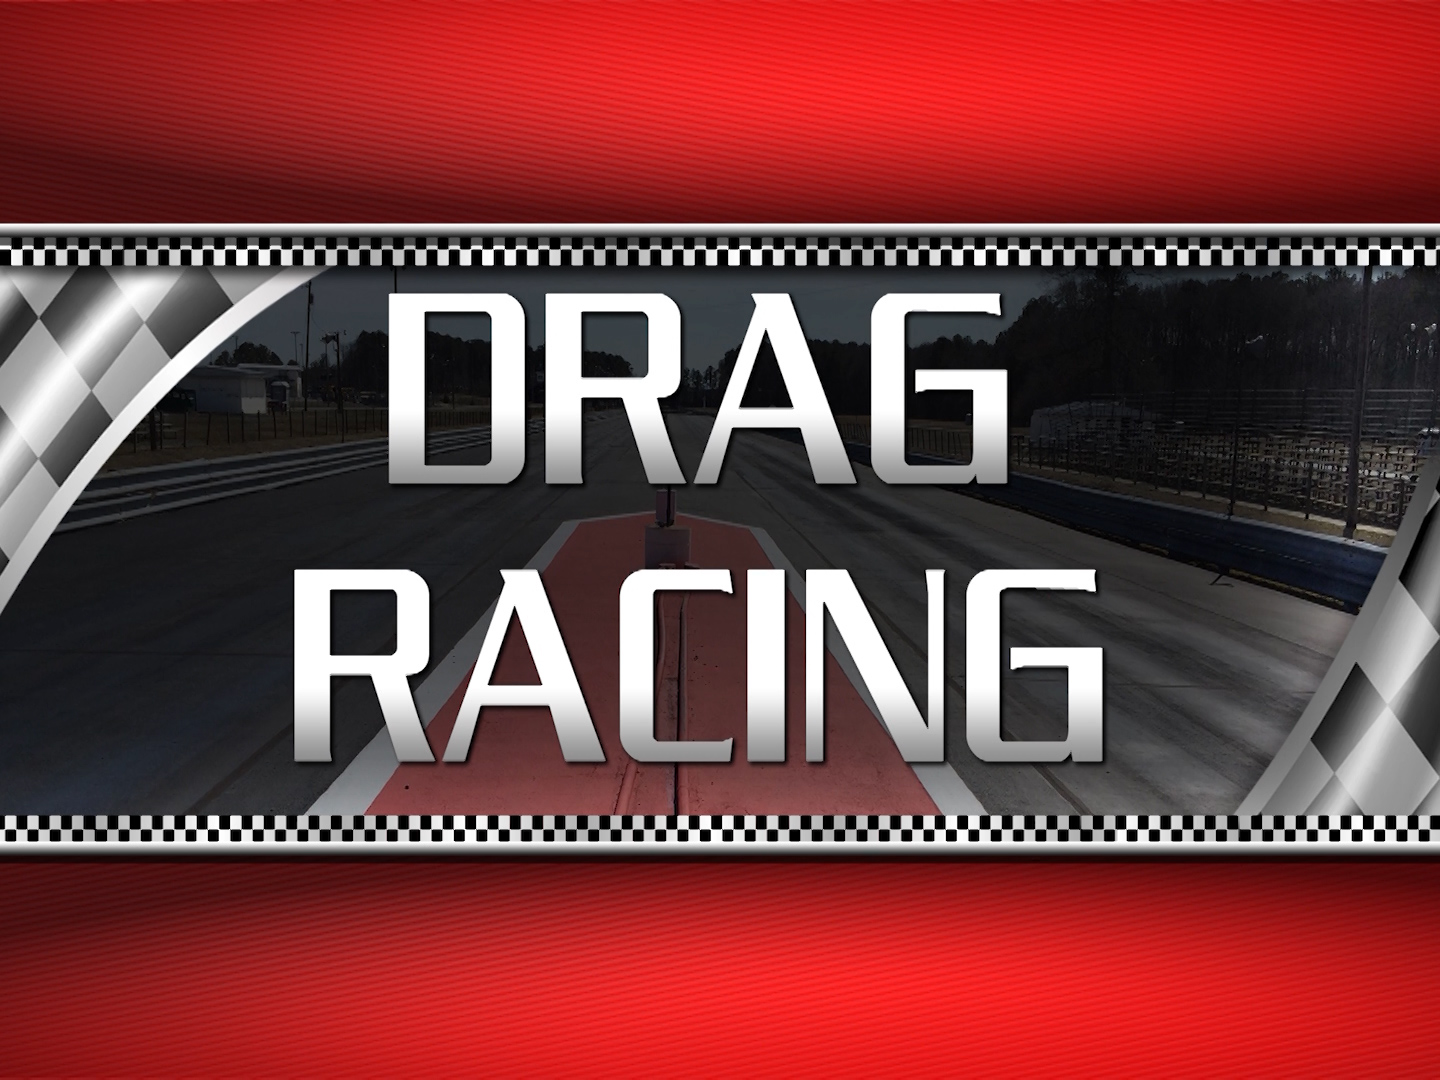 U.S. 13 Drag Racing Results – Sunday, September 27th